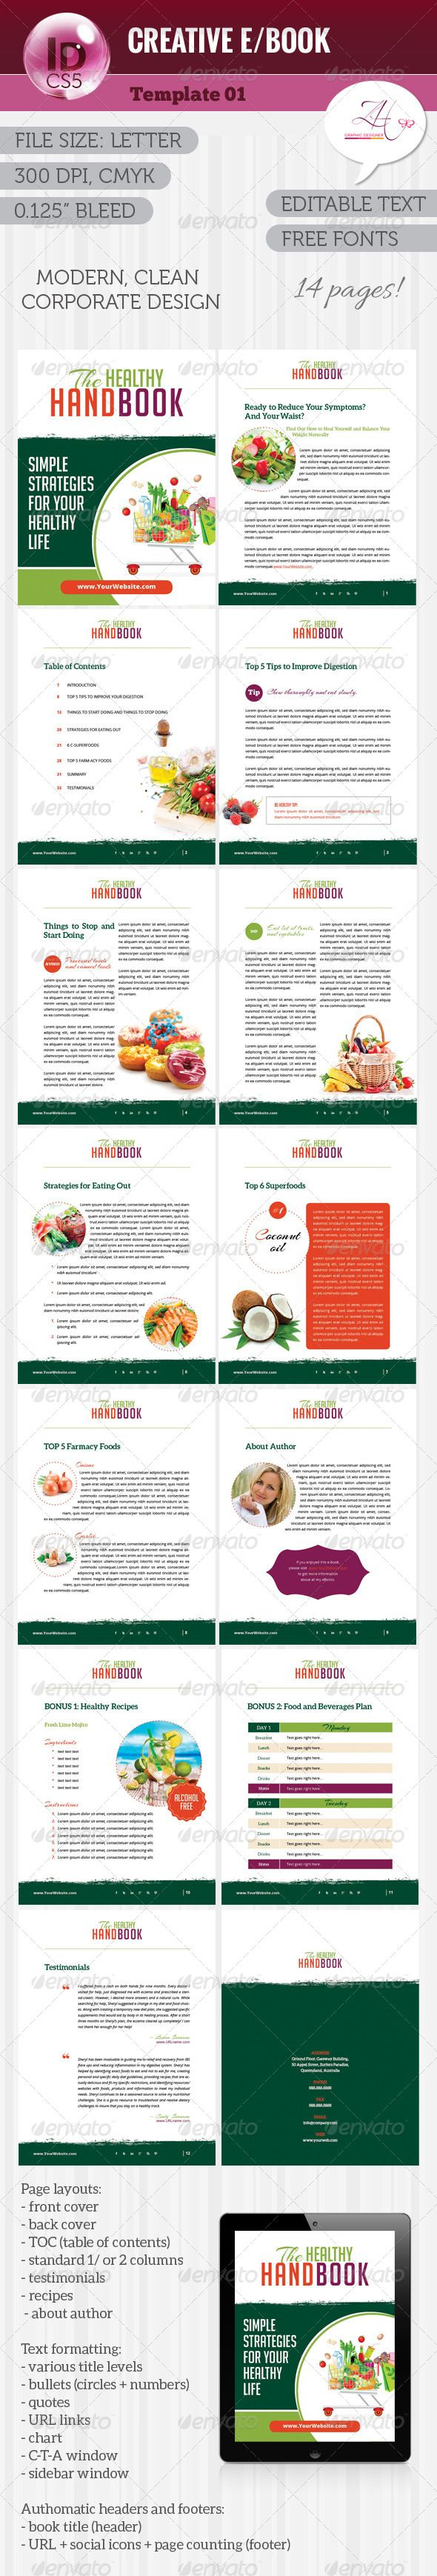 Charming 1 2 3 Nu Kapitel Resume Tall 10 Minute Resume Square 10 Steps To Creating A Resume 16 Year Old Resumes Youthful 2 Round Label Template Orange2014 Calendar Excel Template 24 Best Images About Electronic Print Design Inspiration On ..